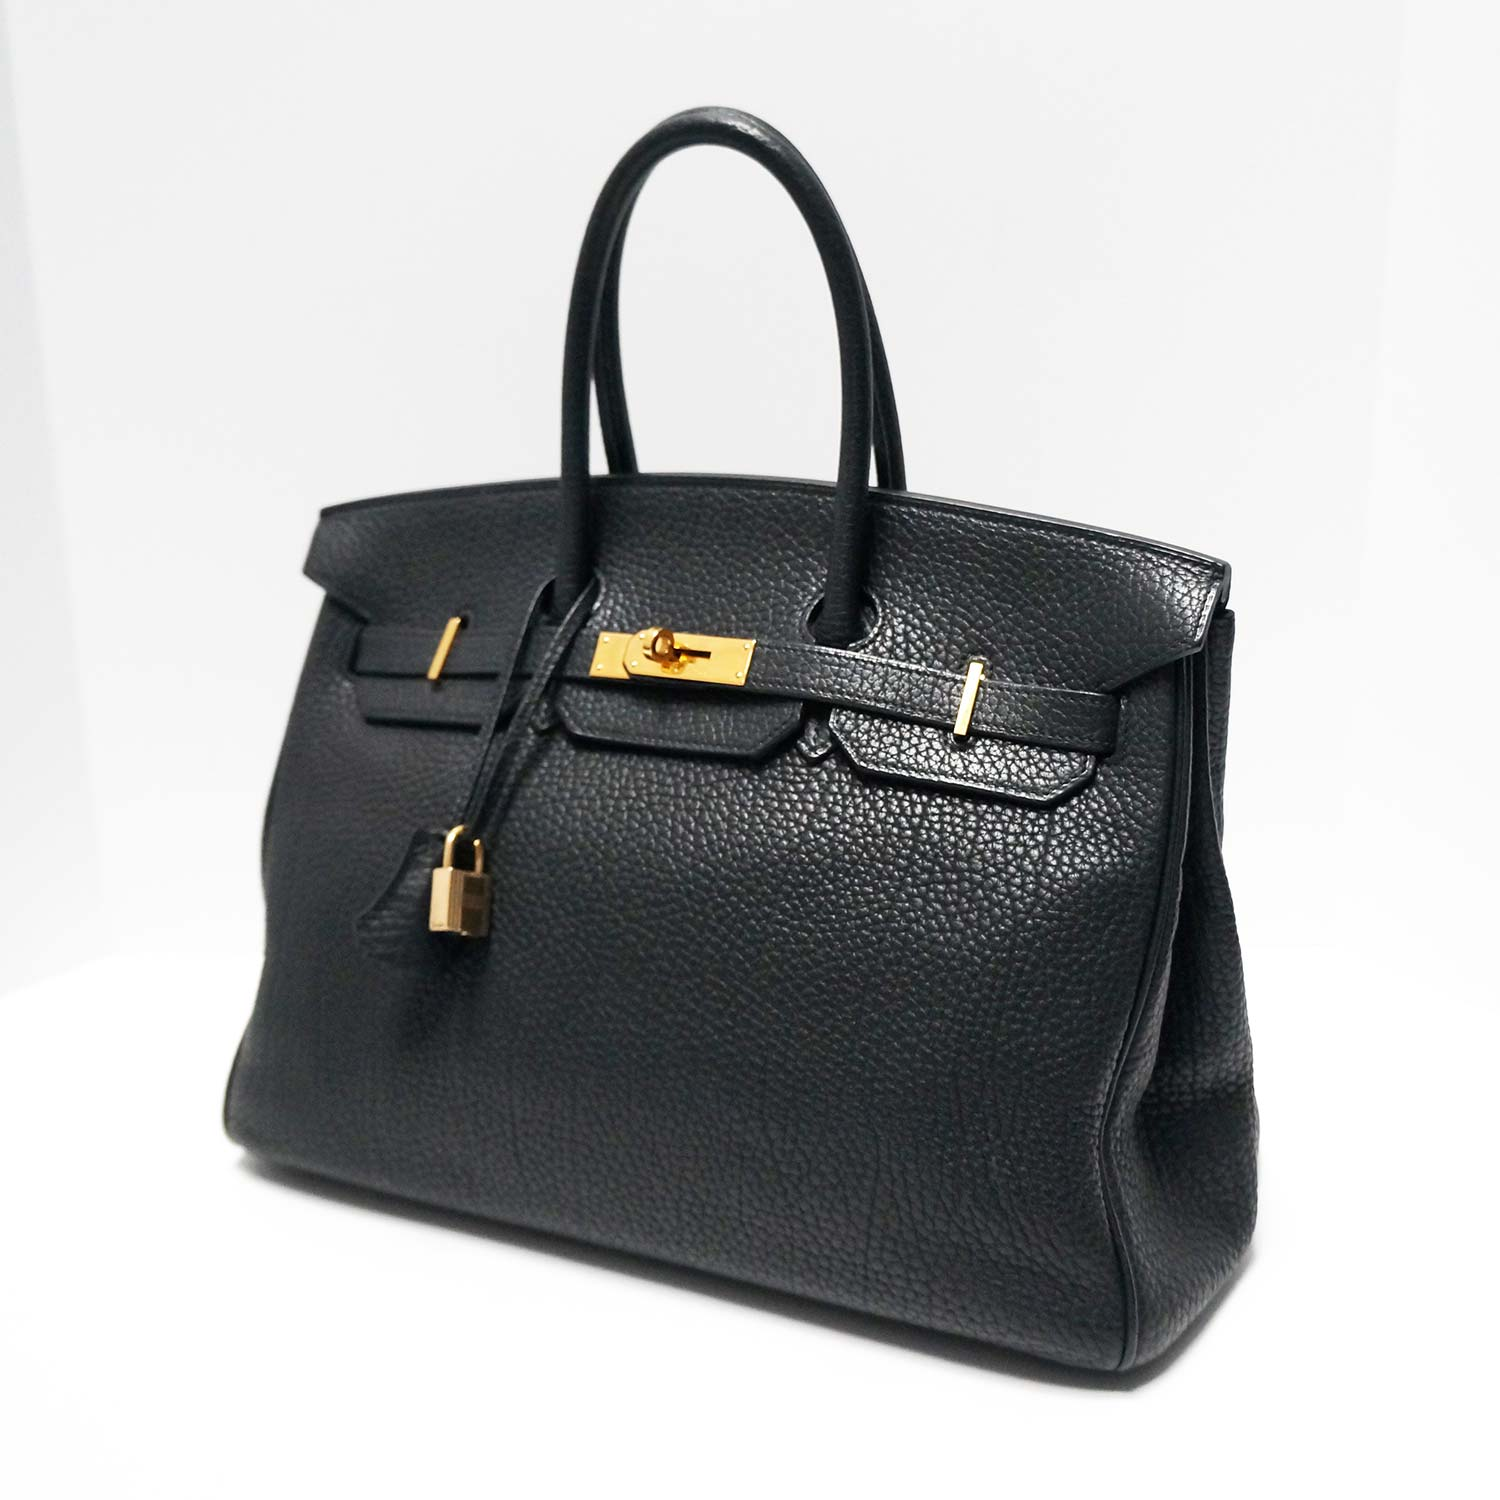 15db1b7f6707 Hermes Black Fjord Leather Gold Hardware 35cm Birkin Bag